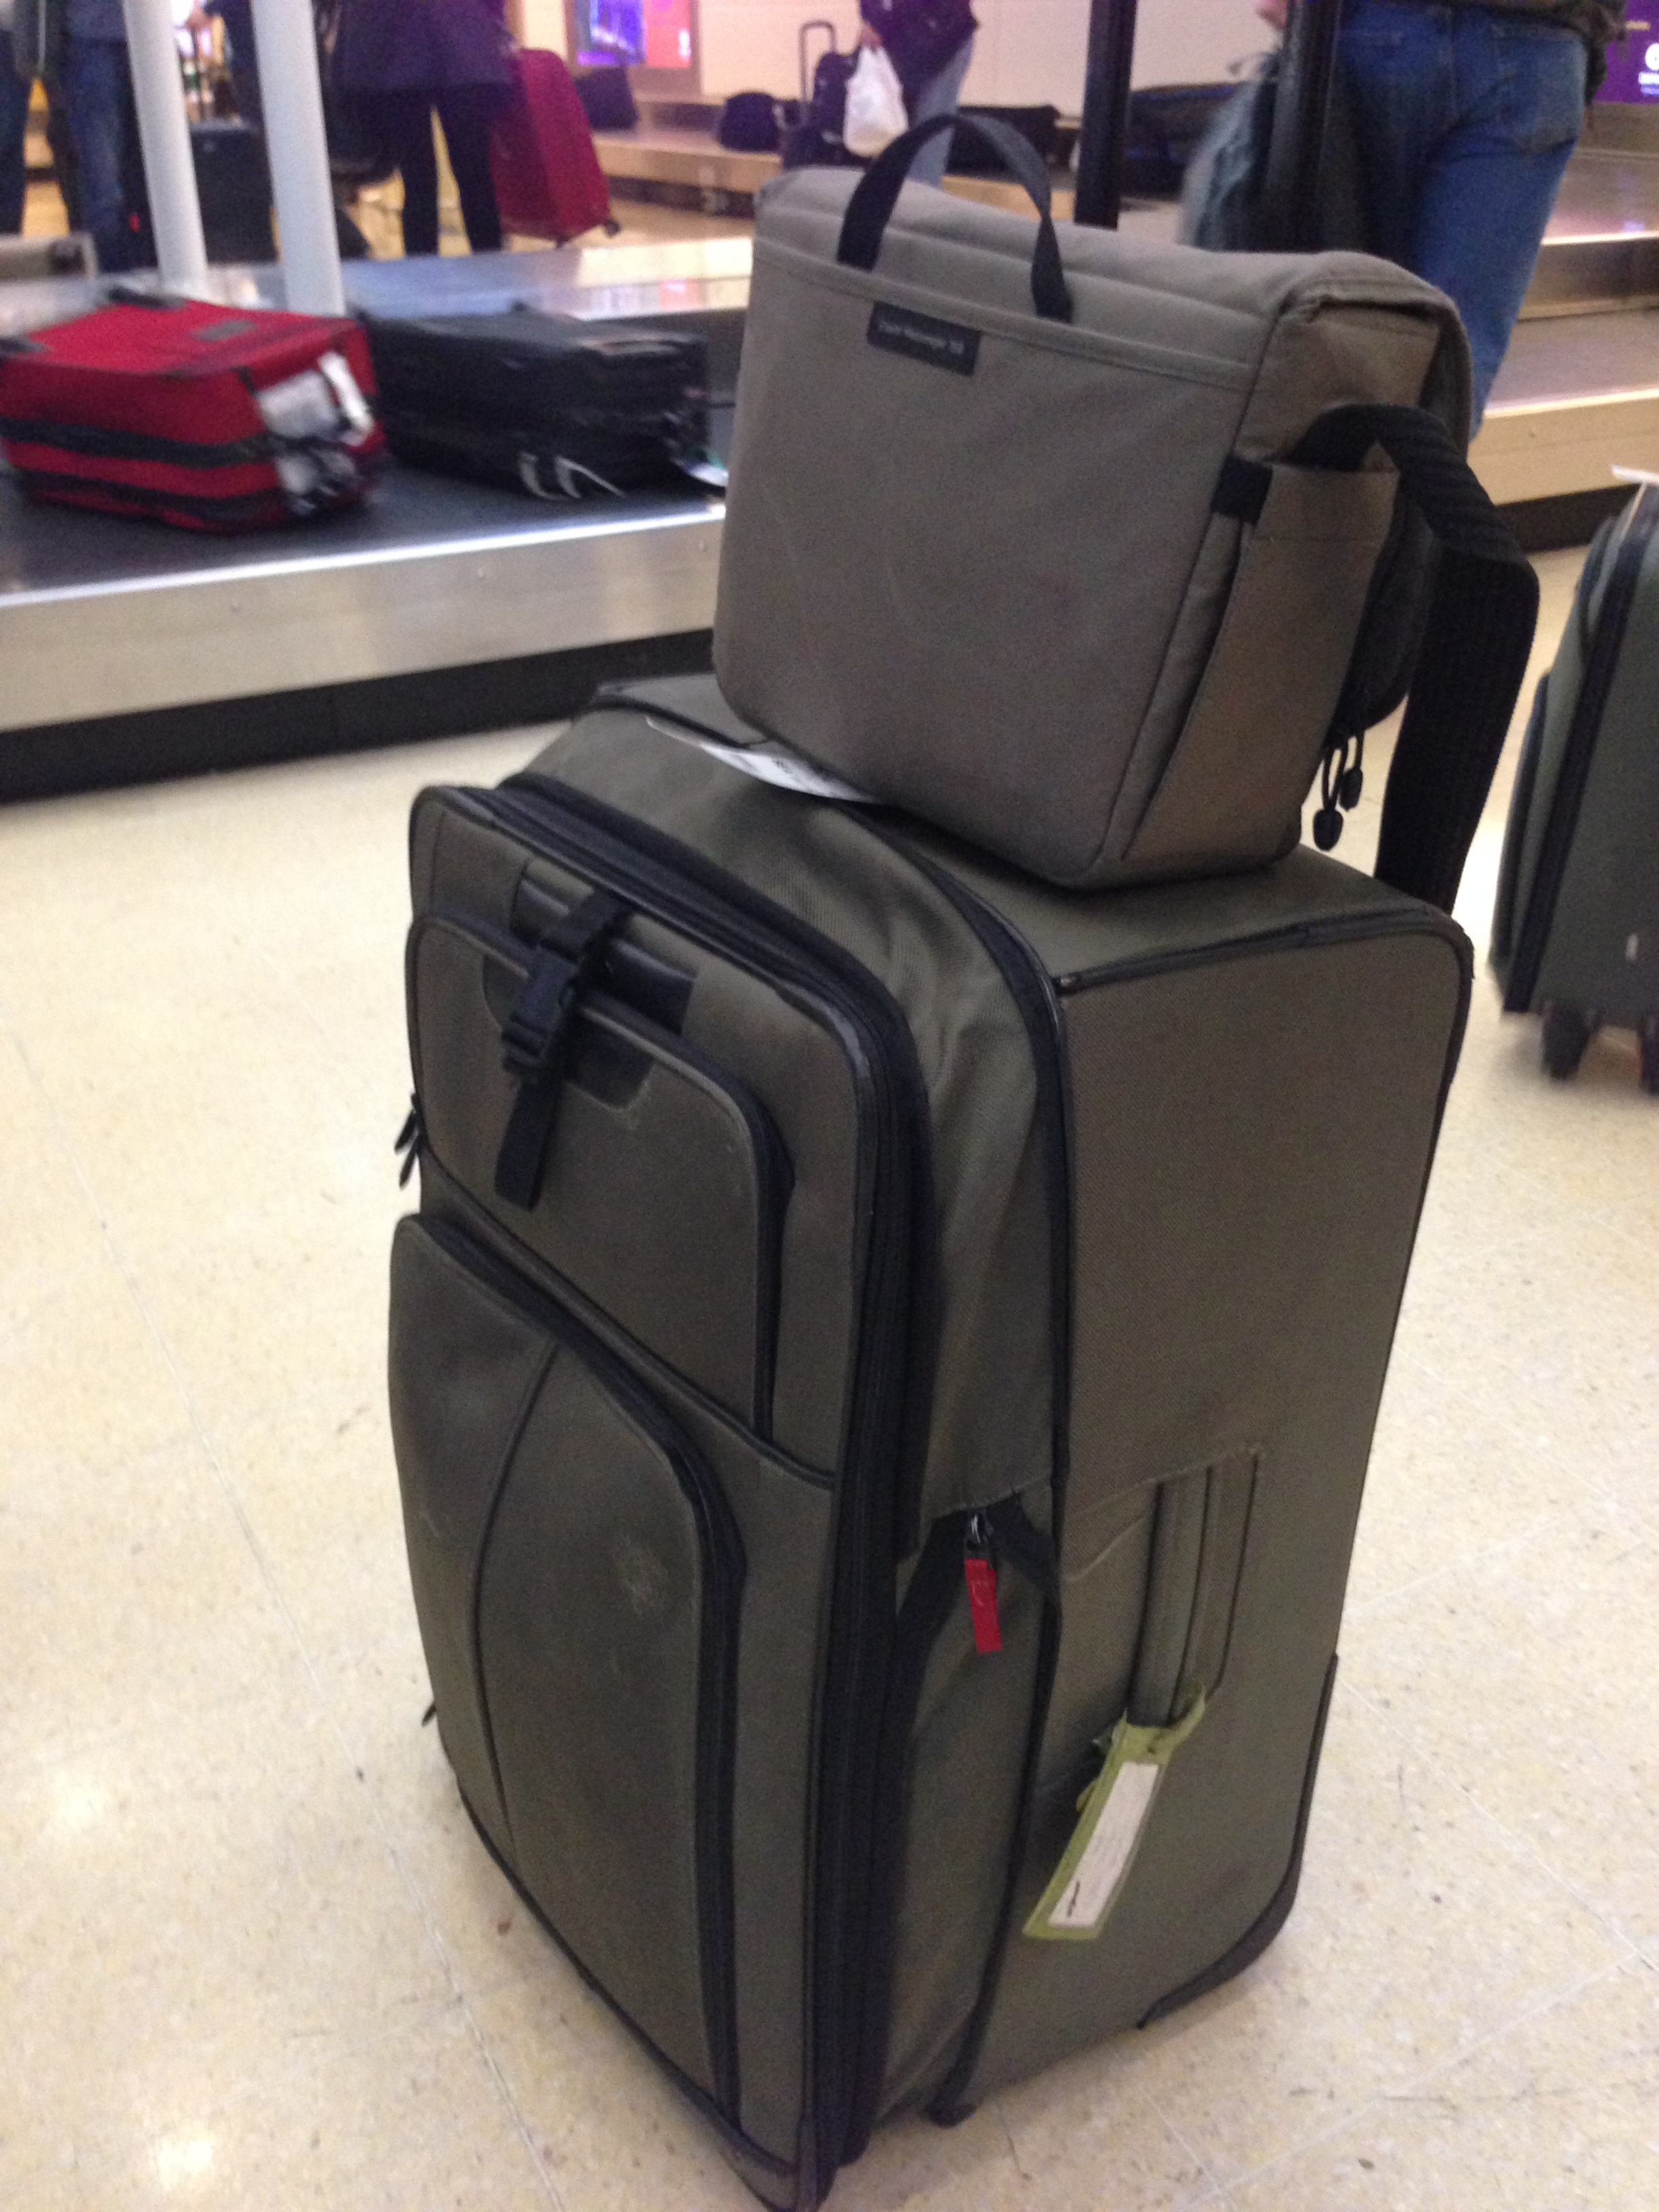 Luggage Copyright Shelagh Donnelly